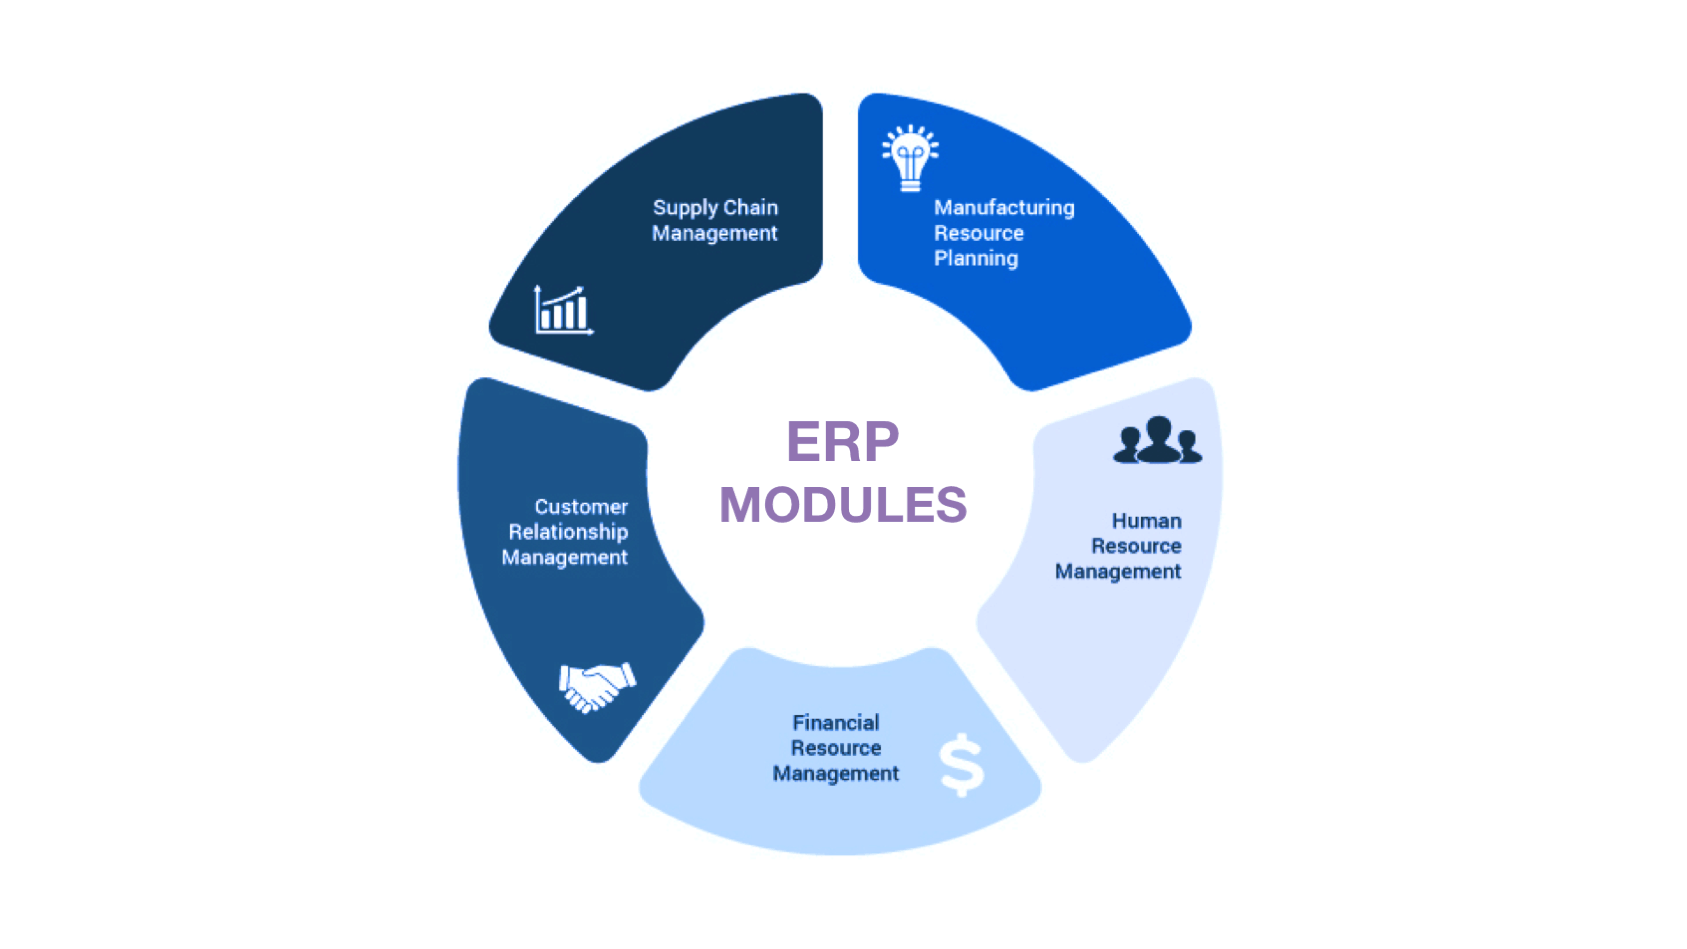 How to build an erp from scratch technologies flow cost and how to build an erp from scratch most commonly implemented modules malvernweather Images